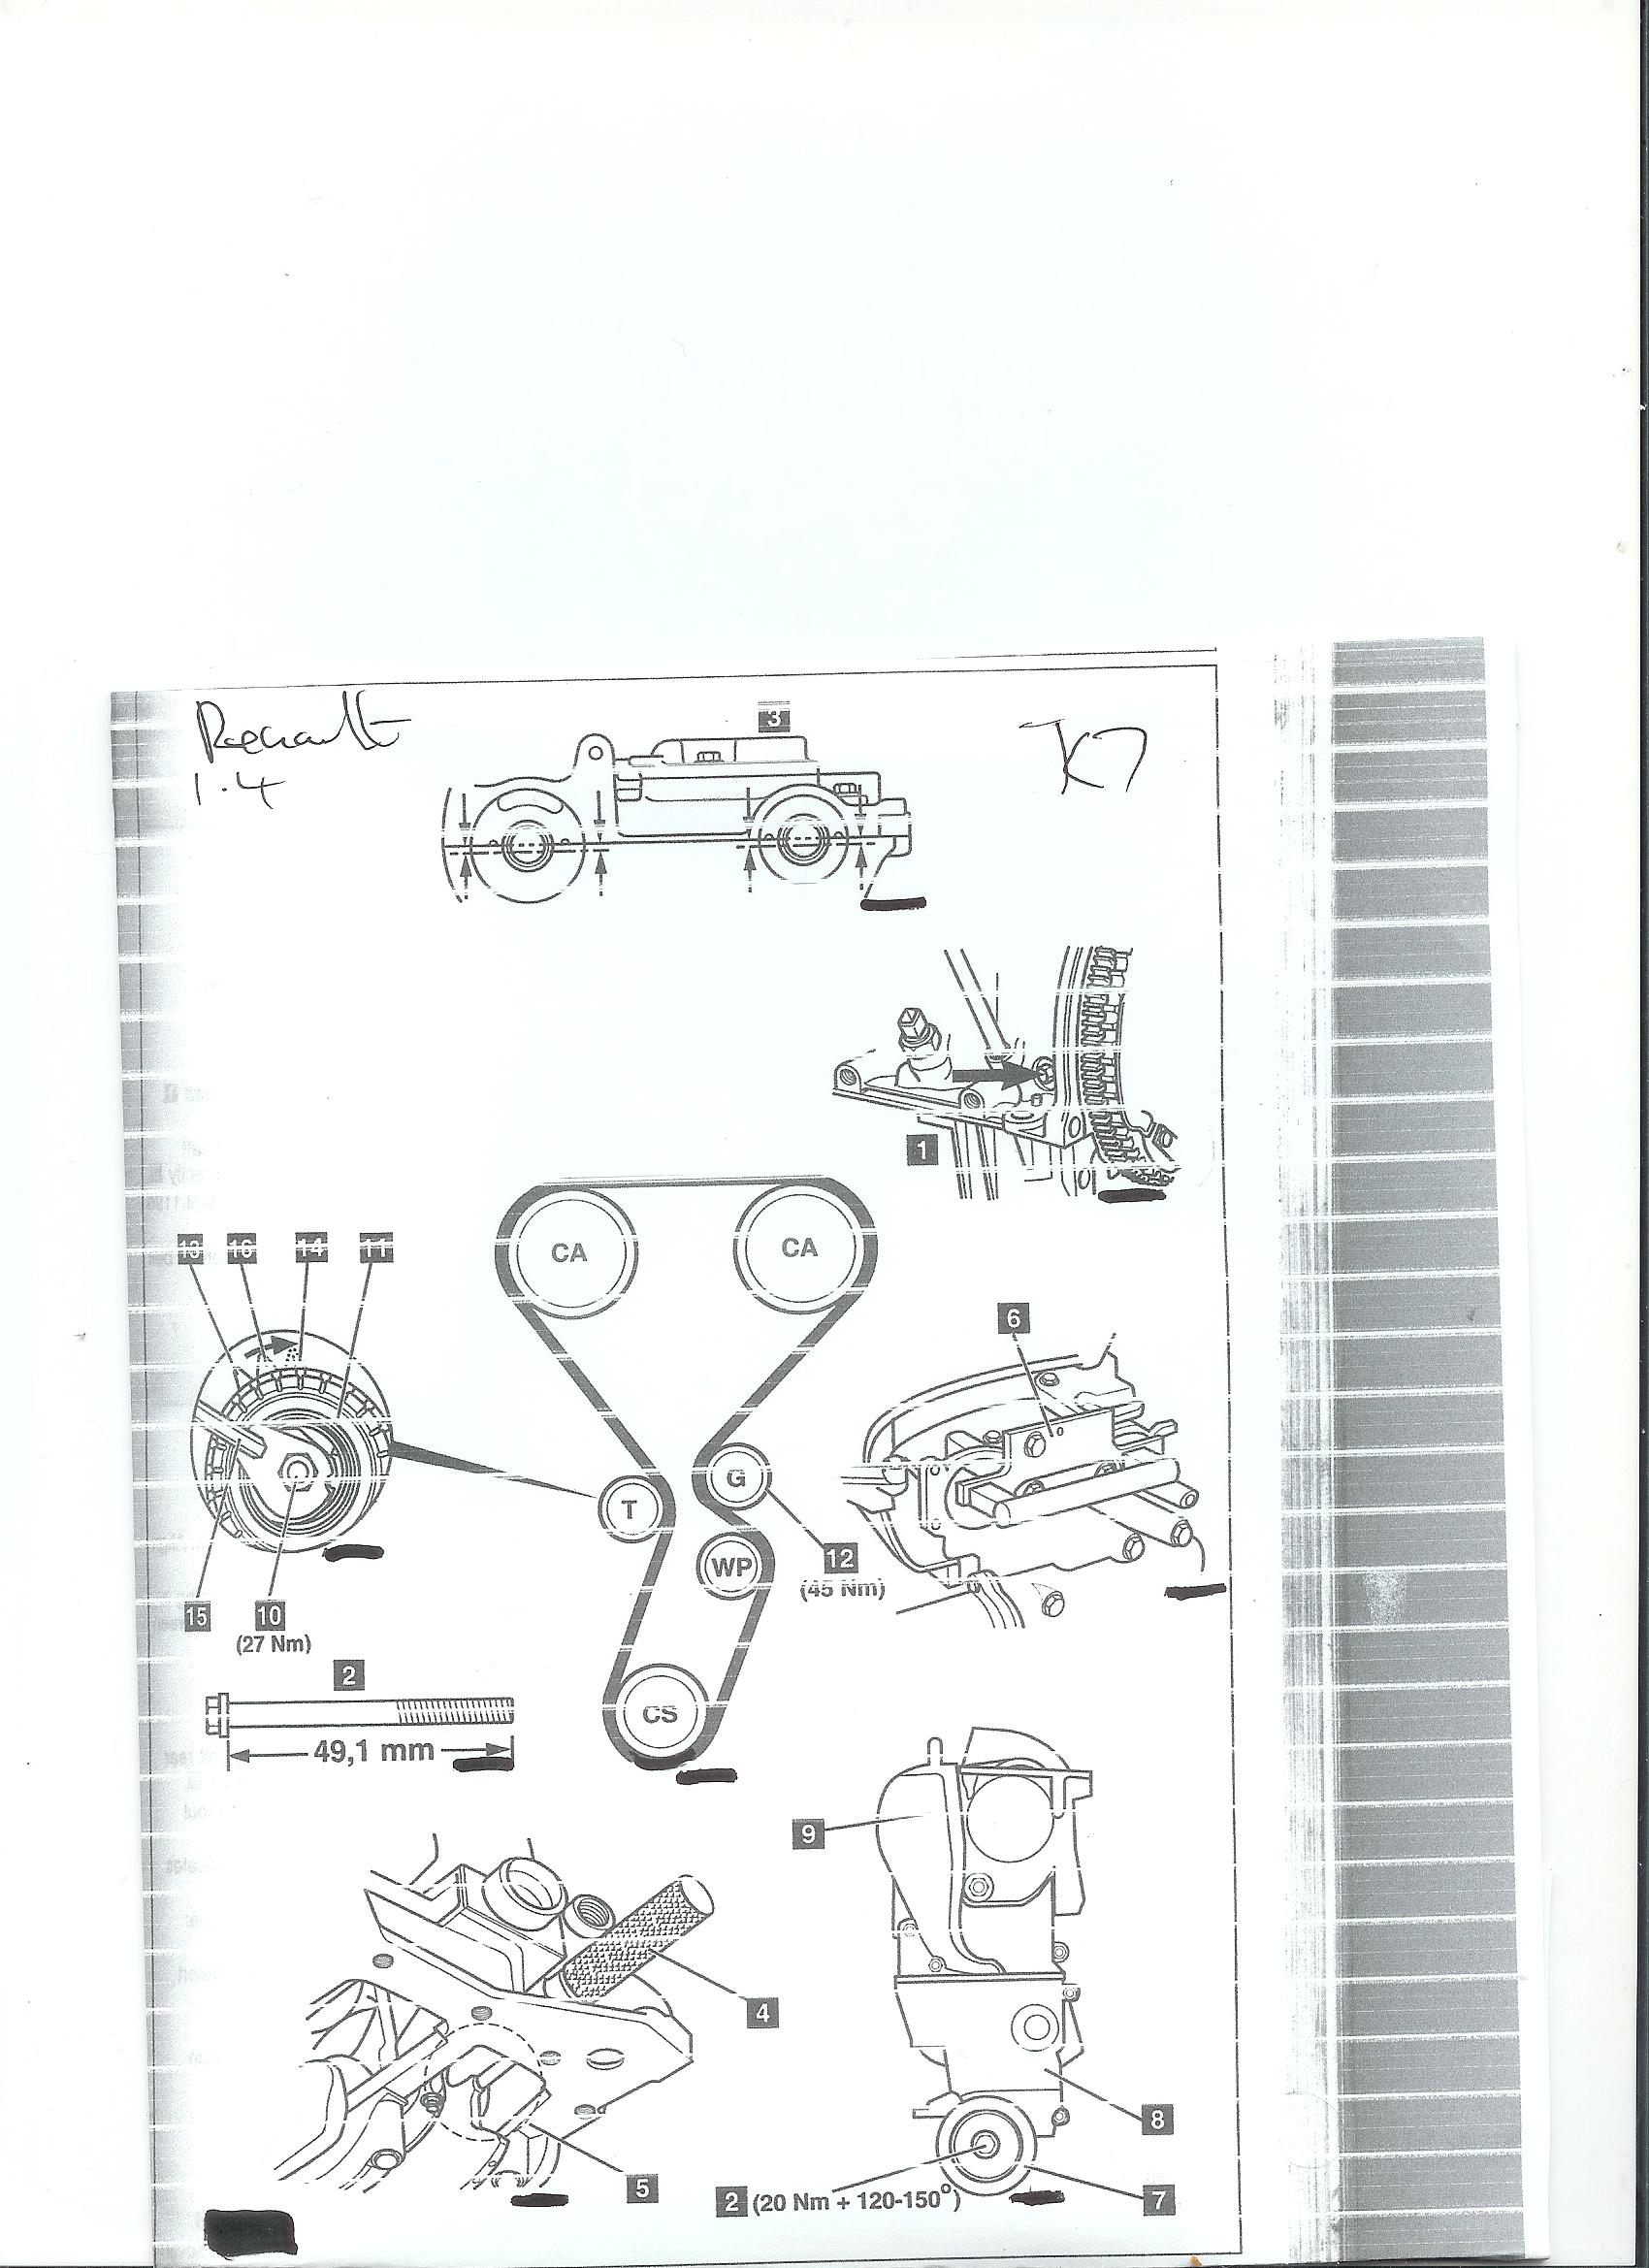 I Need Timing Belt Replacement Diagrams And Settings For 2002 Renault Graphic